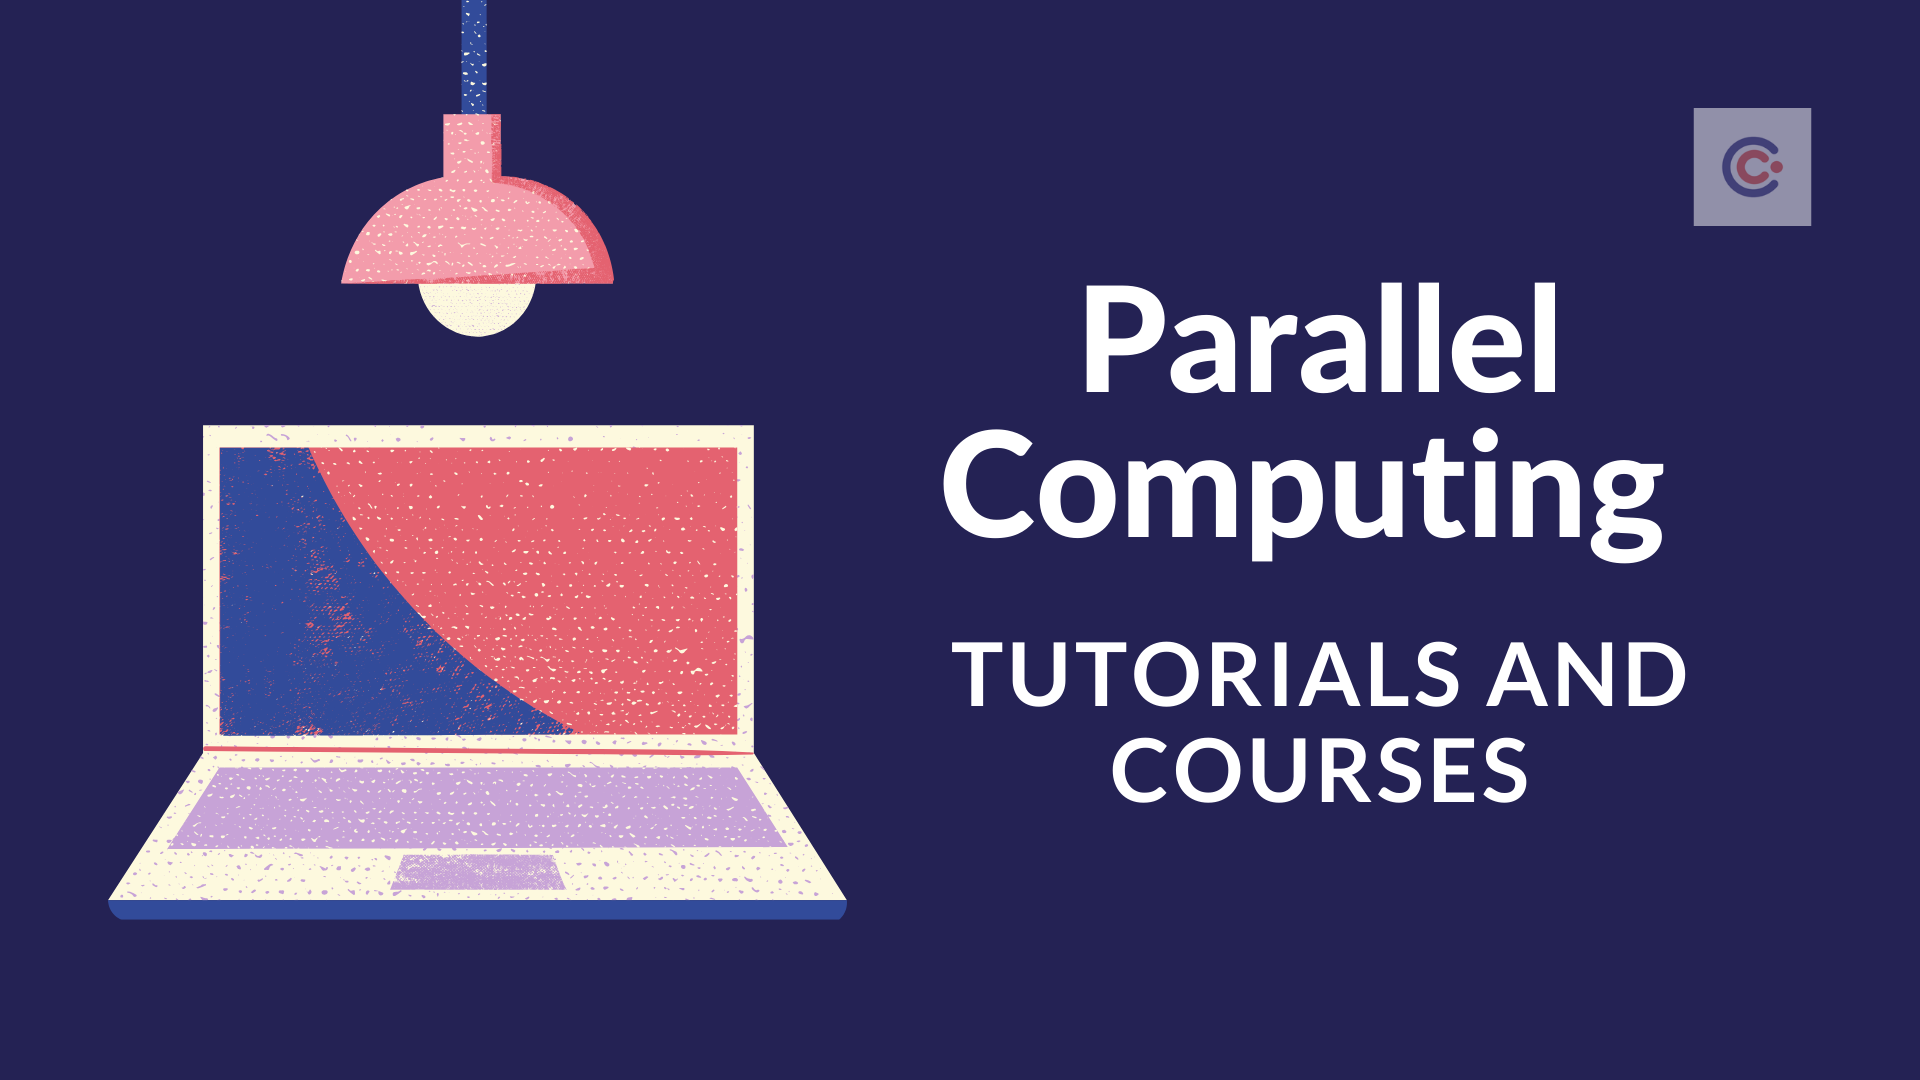 7 Best Parallel Computing Courses & Tutorials - Learn Parallel Computing Online